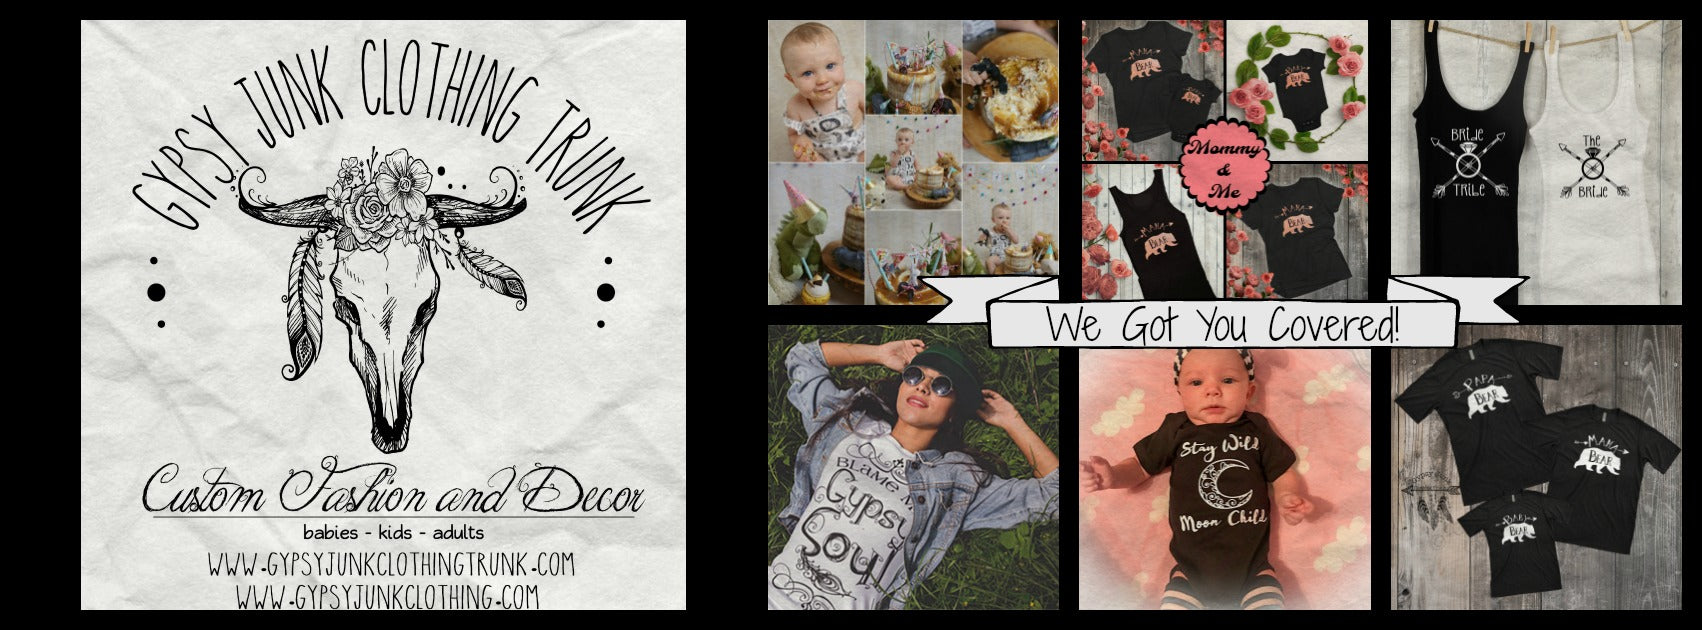 Gypsy Junk Clothing Trunk Banner